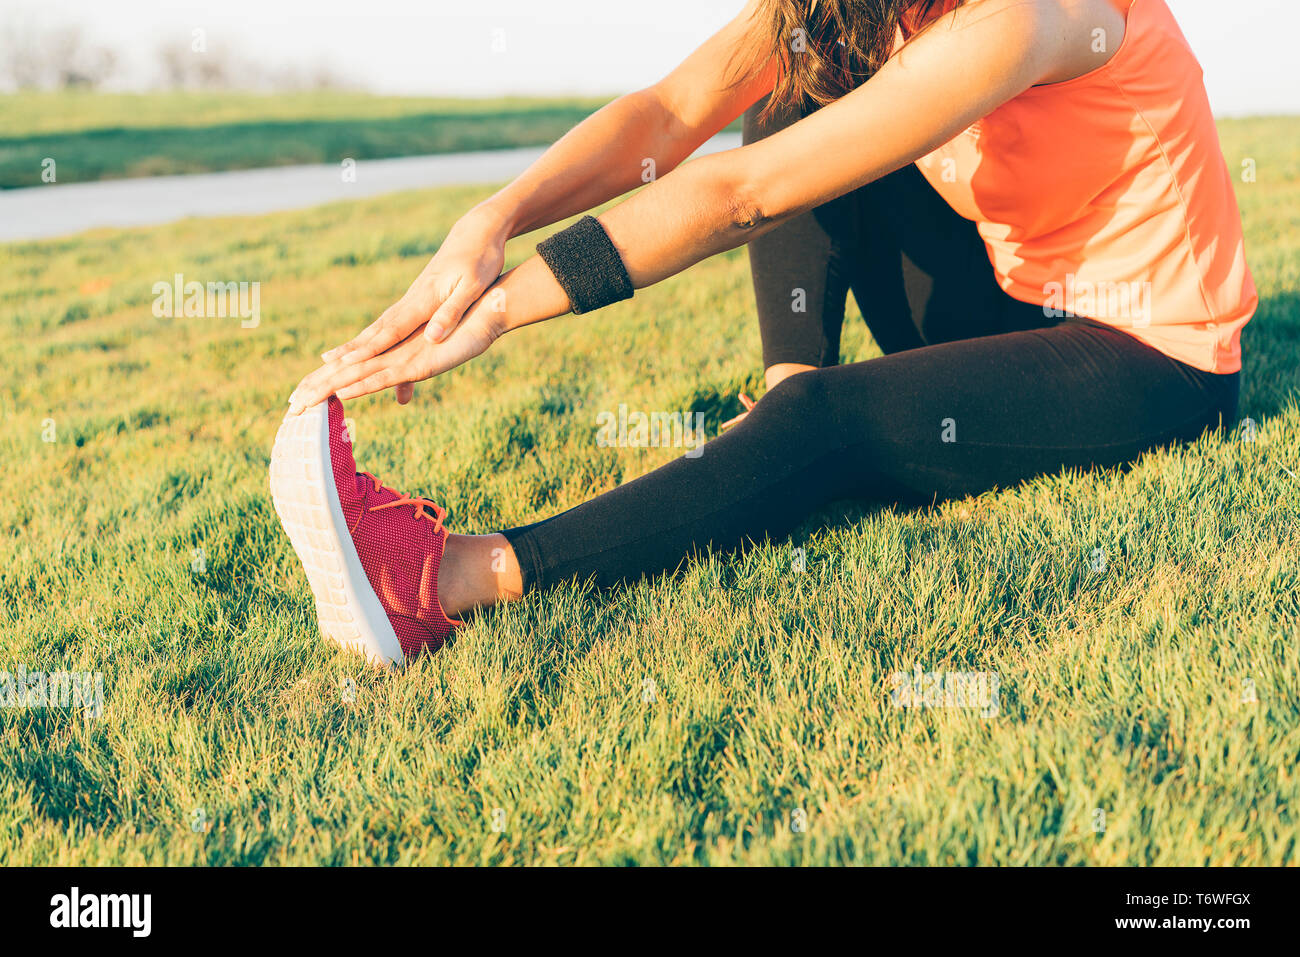 Young runner woman stretching legs before run in a park. Close up athletic and healthy girl wearing white and pink sneakers. Stock Photo